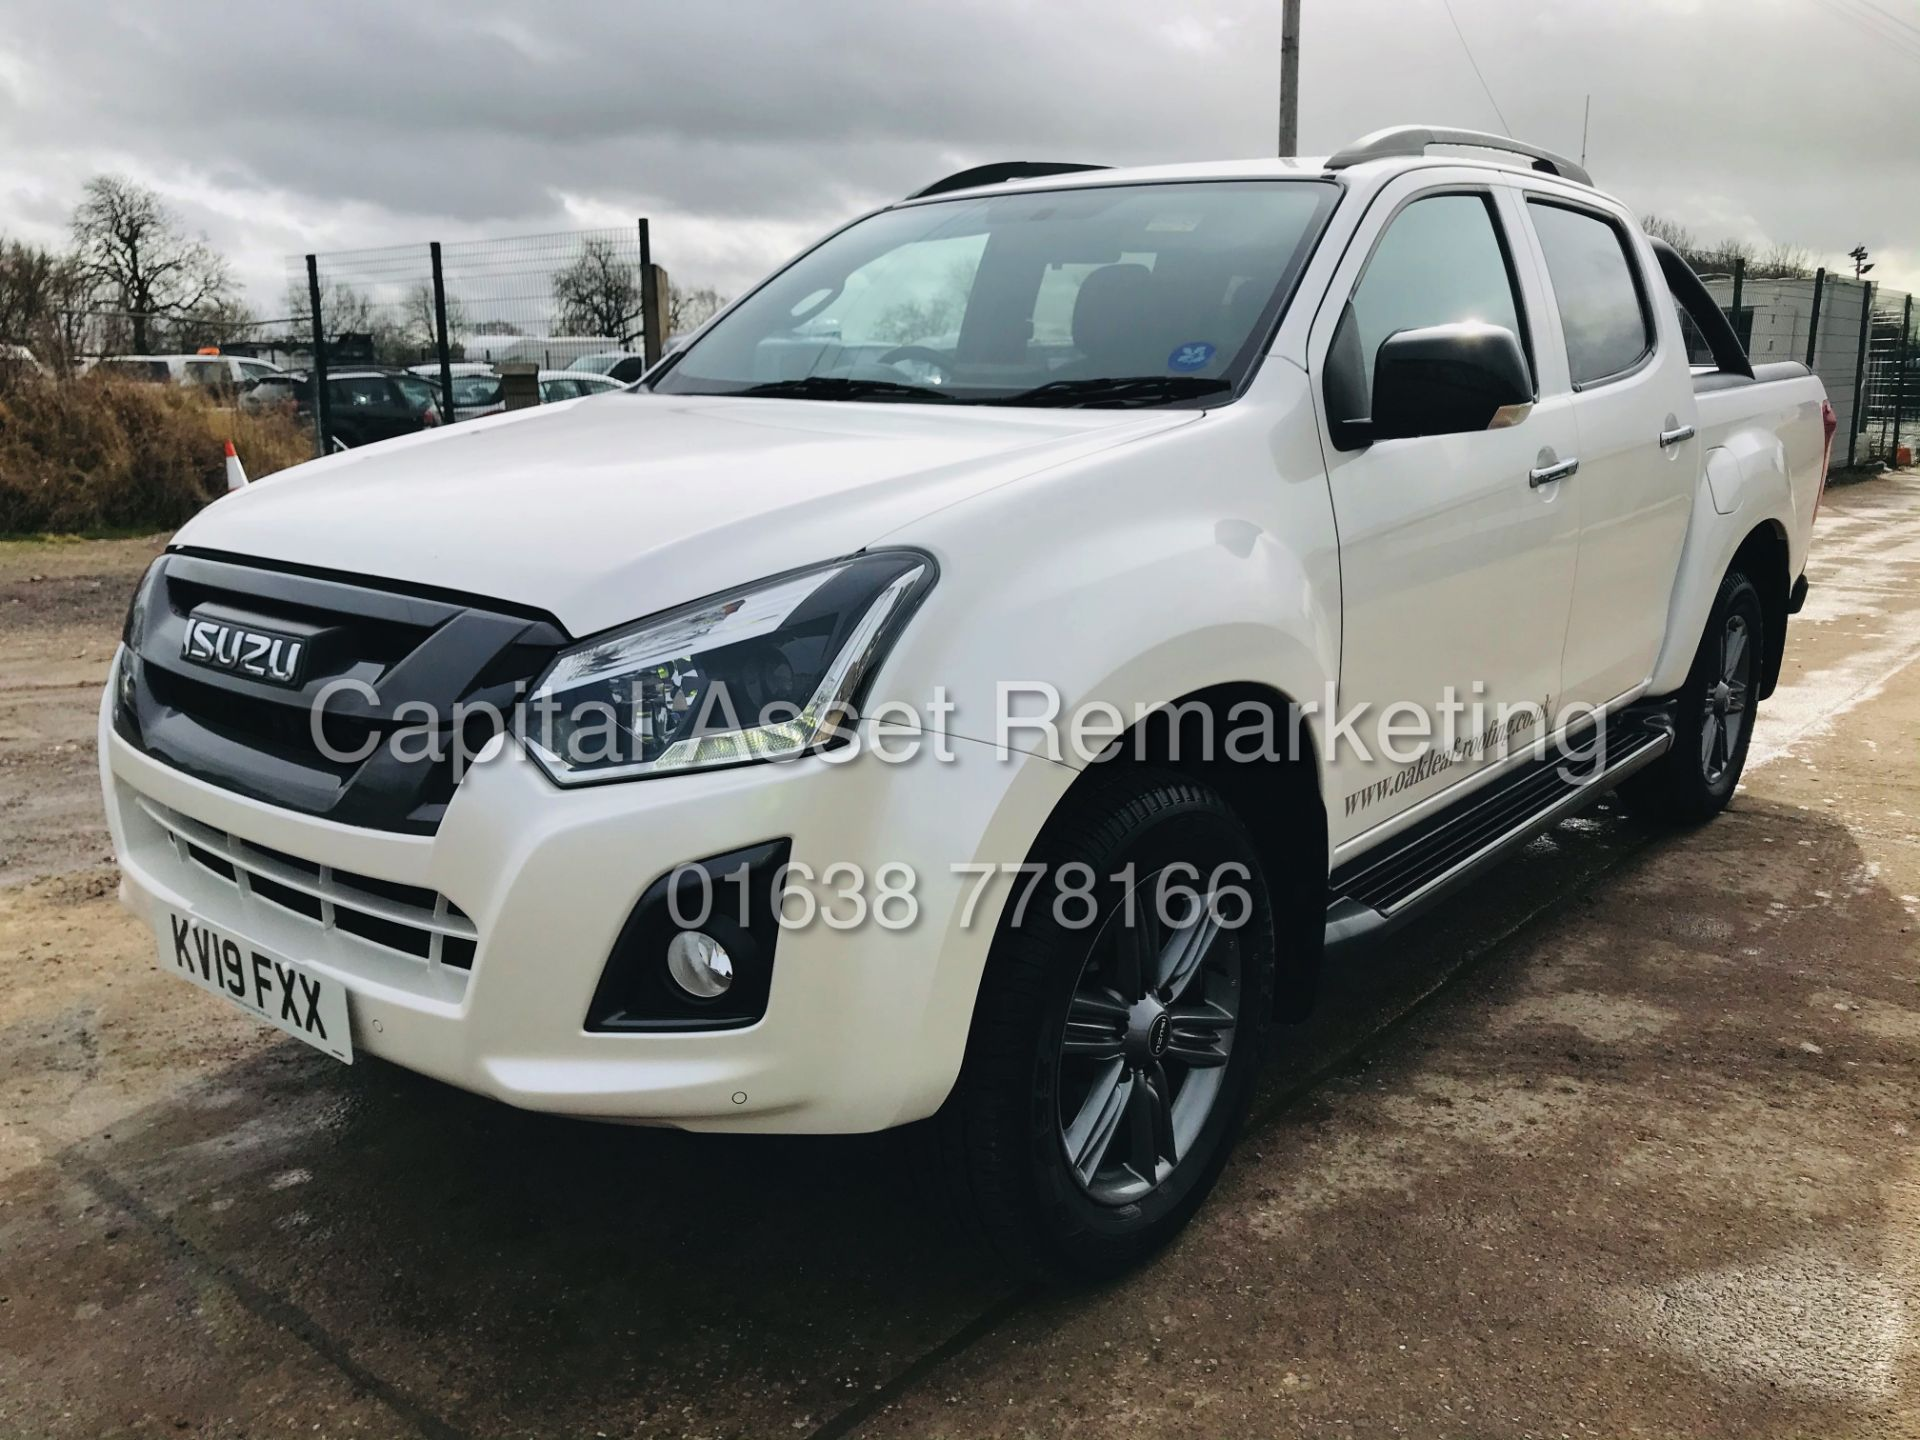 "(On Sale) ISUZU D-MAX ""BLADE"" AUTO - 1 OWNER (2019 - EURO 6) LEATHER - SAT NAV *TOP SPEC* - Image 5 of 34"